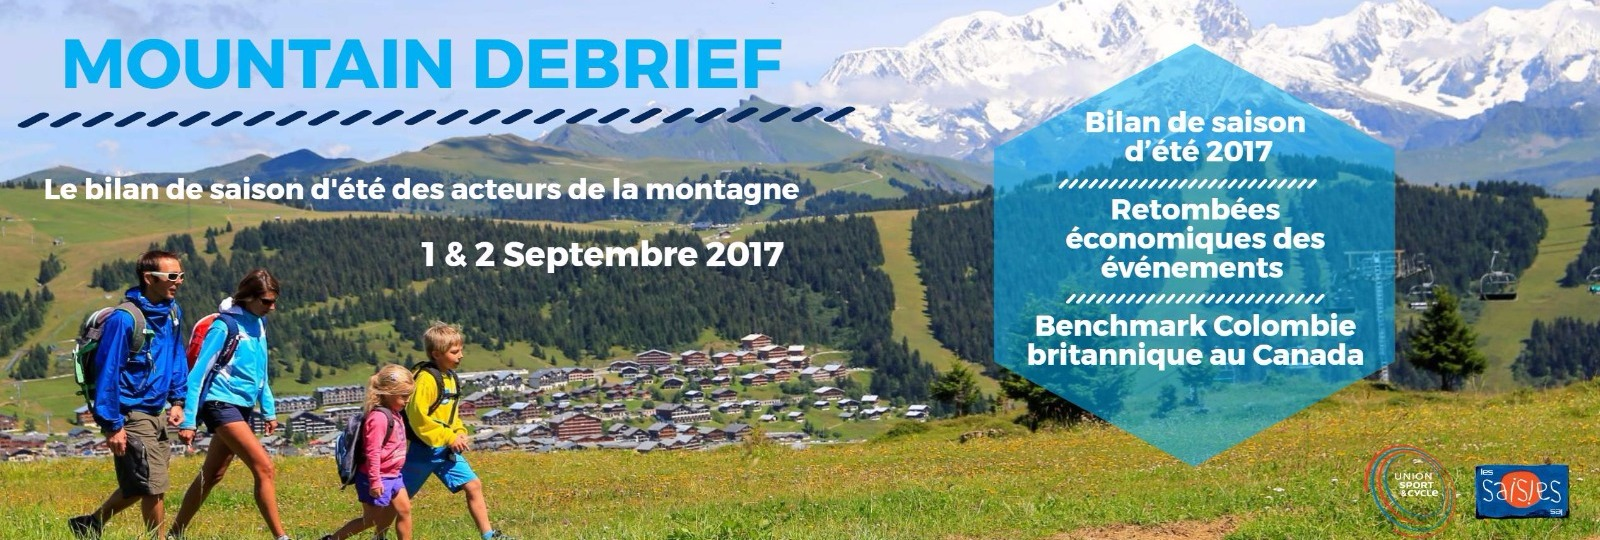 Mountain Debrief – 1er et 2 septembre 2017